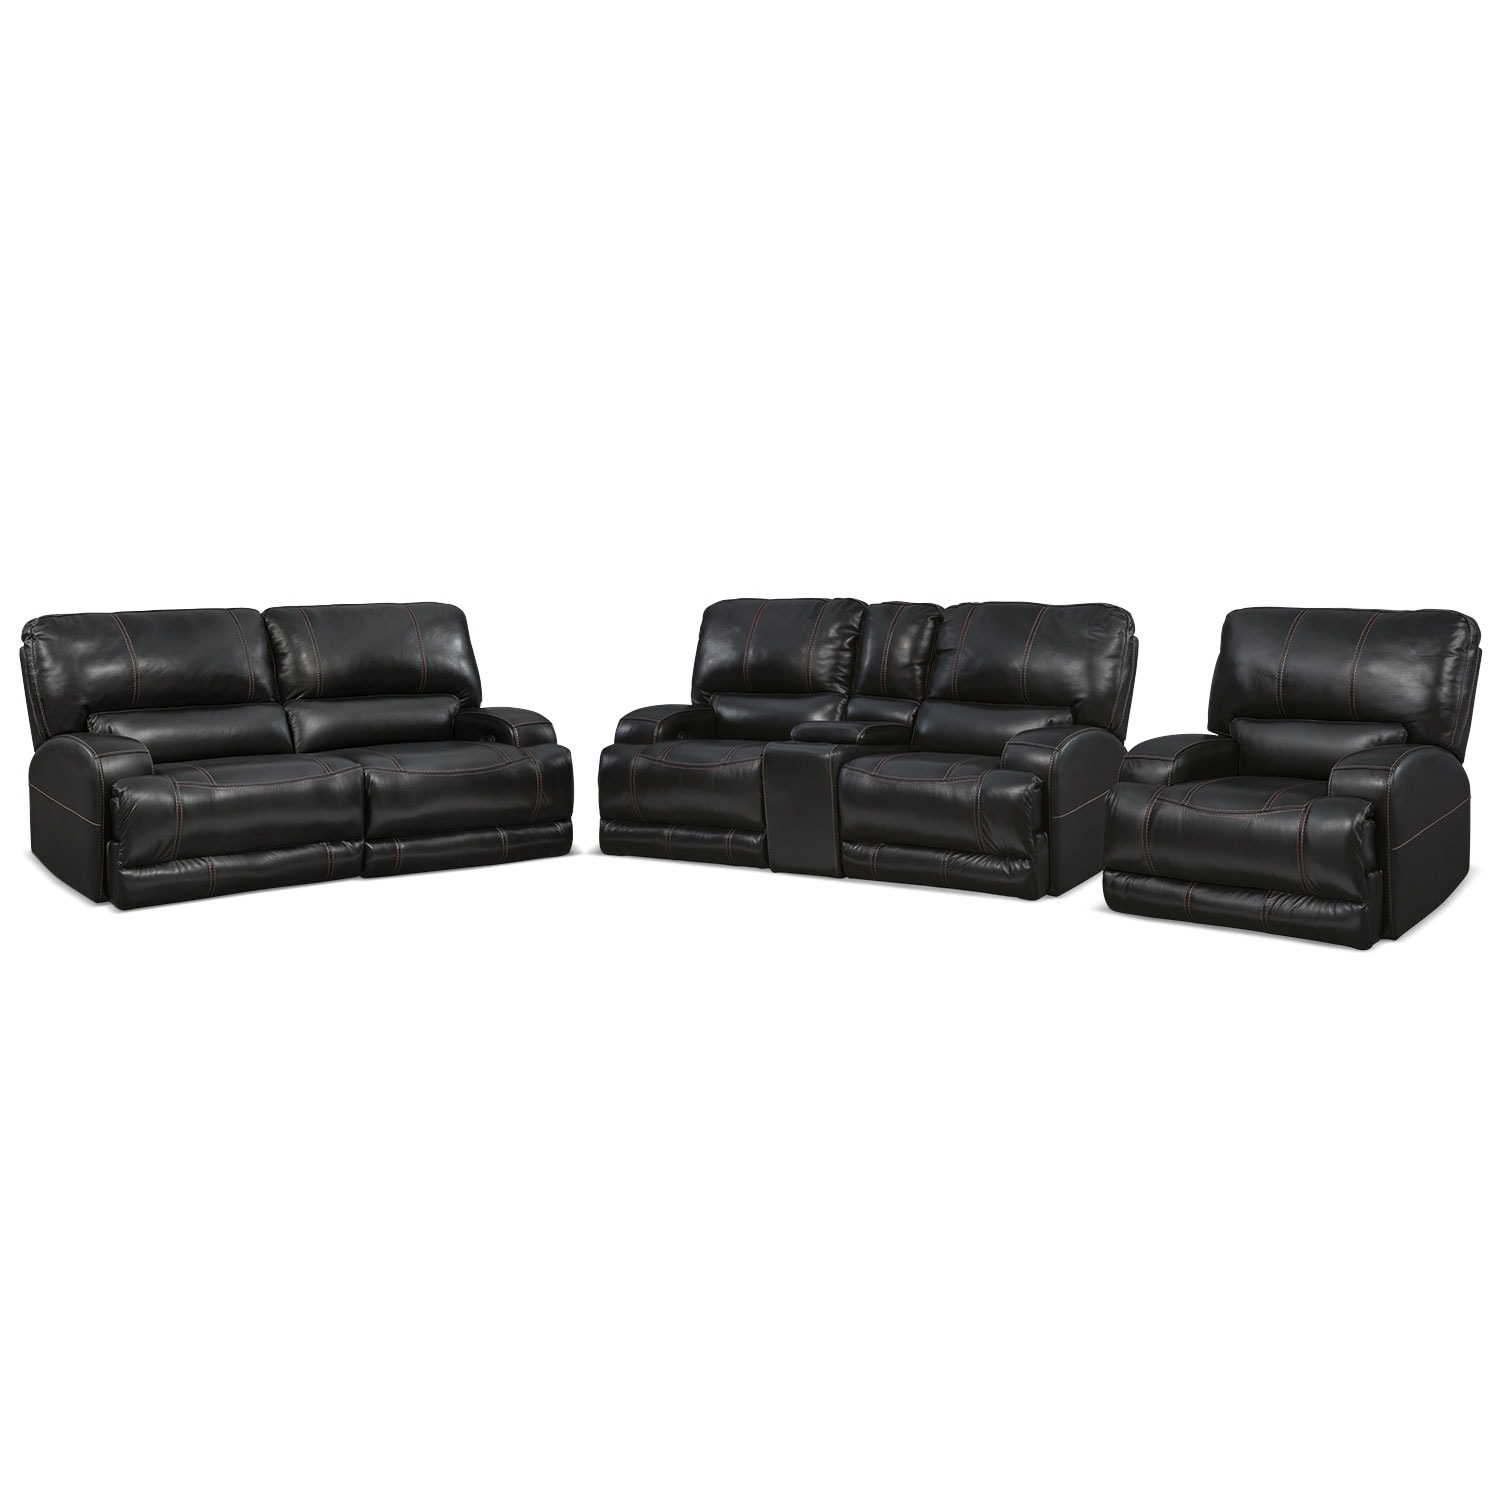 Living Room Furniture - Barton Black 3 Pc. Power Reclining Living Room